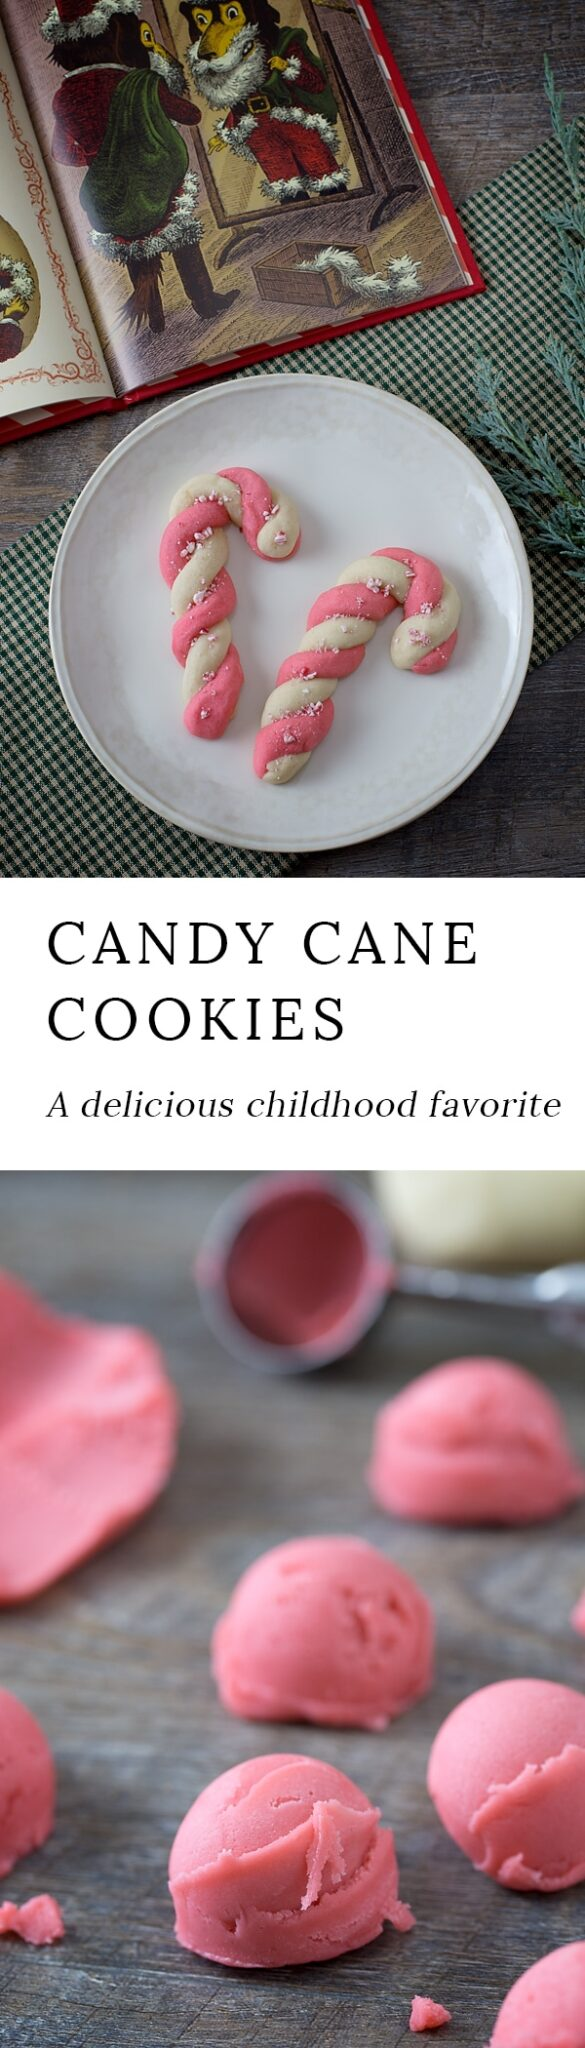 Delight kids and the young at heart this Christmas with Peppermint Candy Cane Cookies. A classic Christmas cookie, perfect for the holidays.